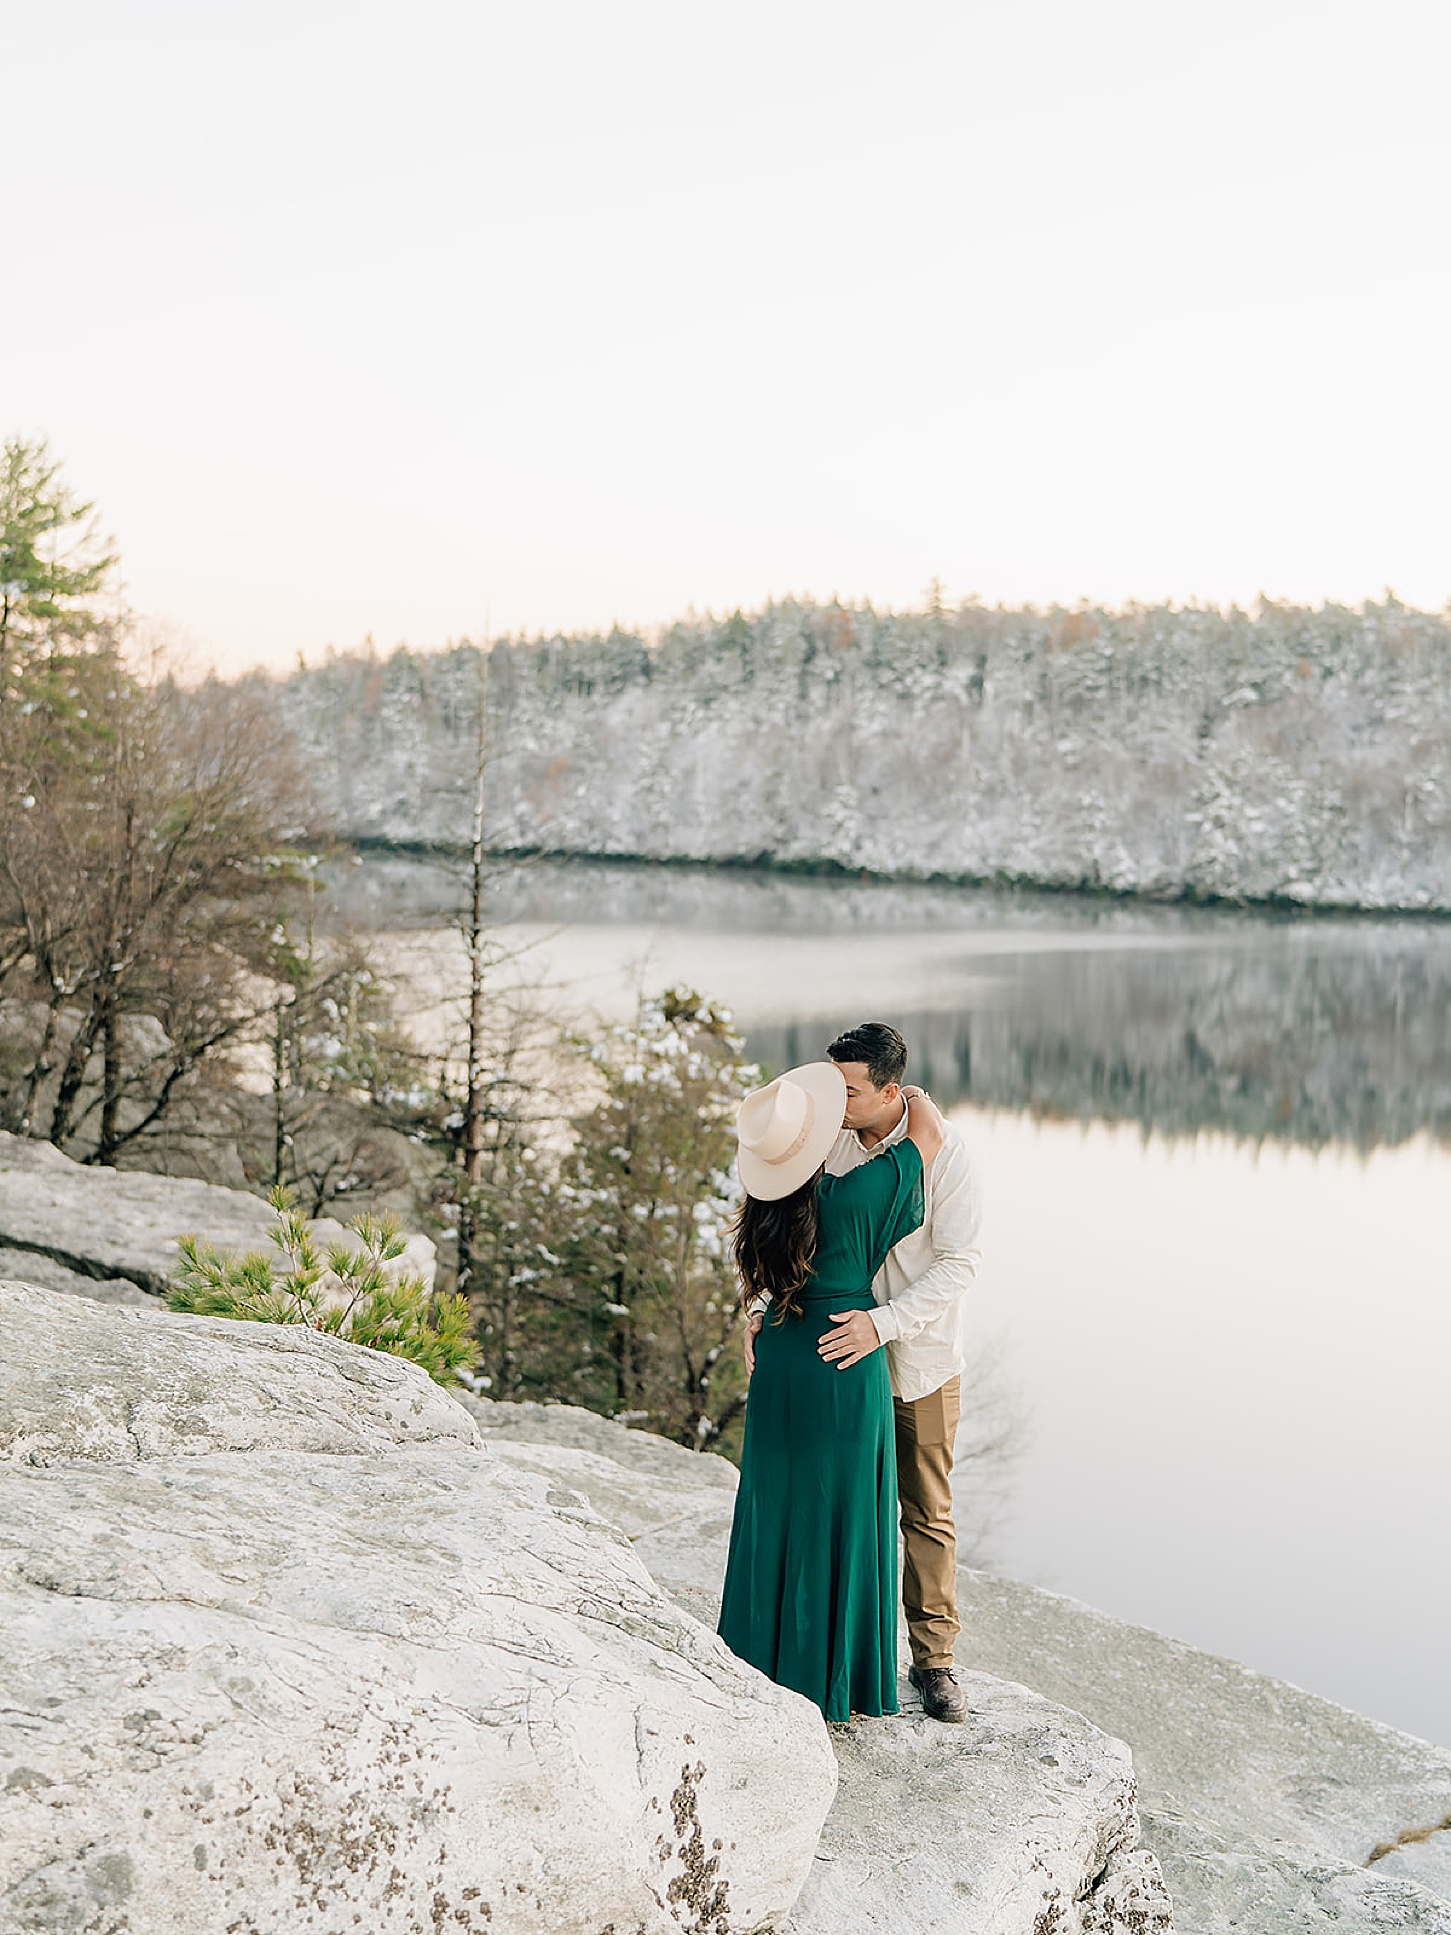 Vermont Destination Engagement Photography by Magdalena Studios 0013